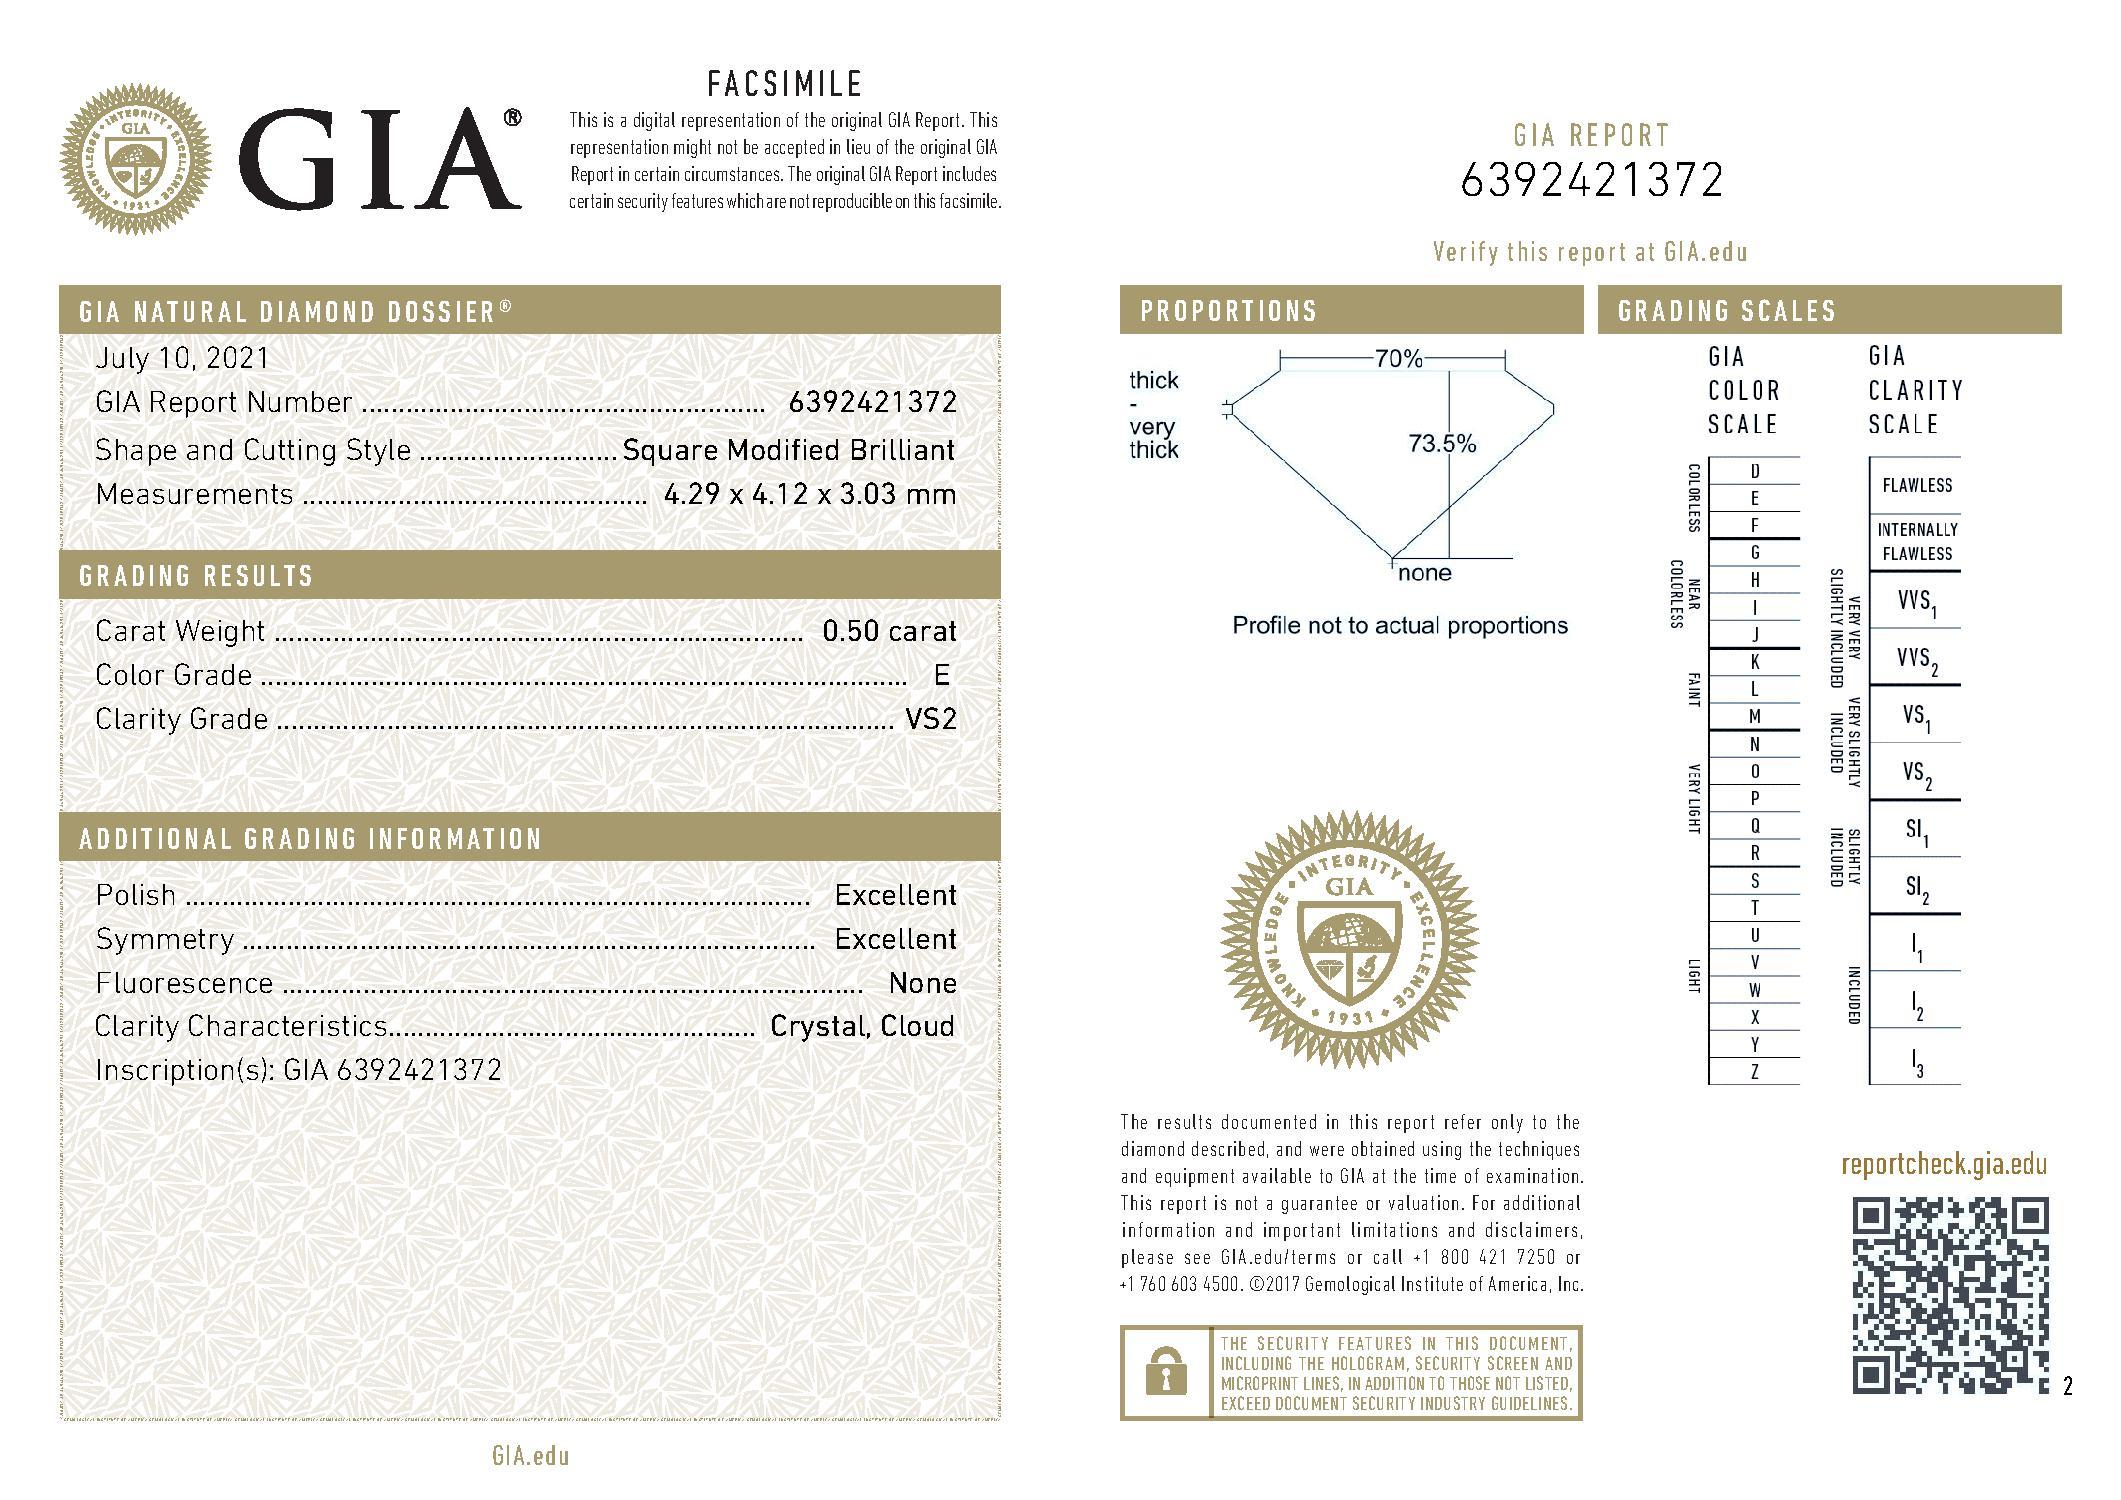 This is a 0.50 carat princess shape, E color, VS2 clarity natural diamond accompanied by a GIA grading report.